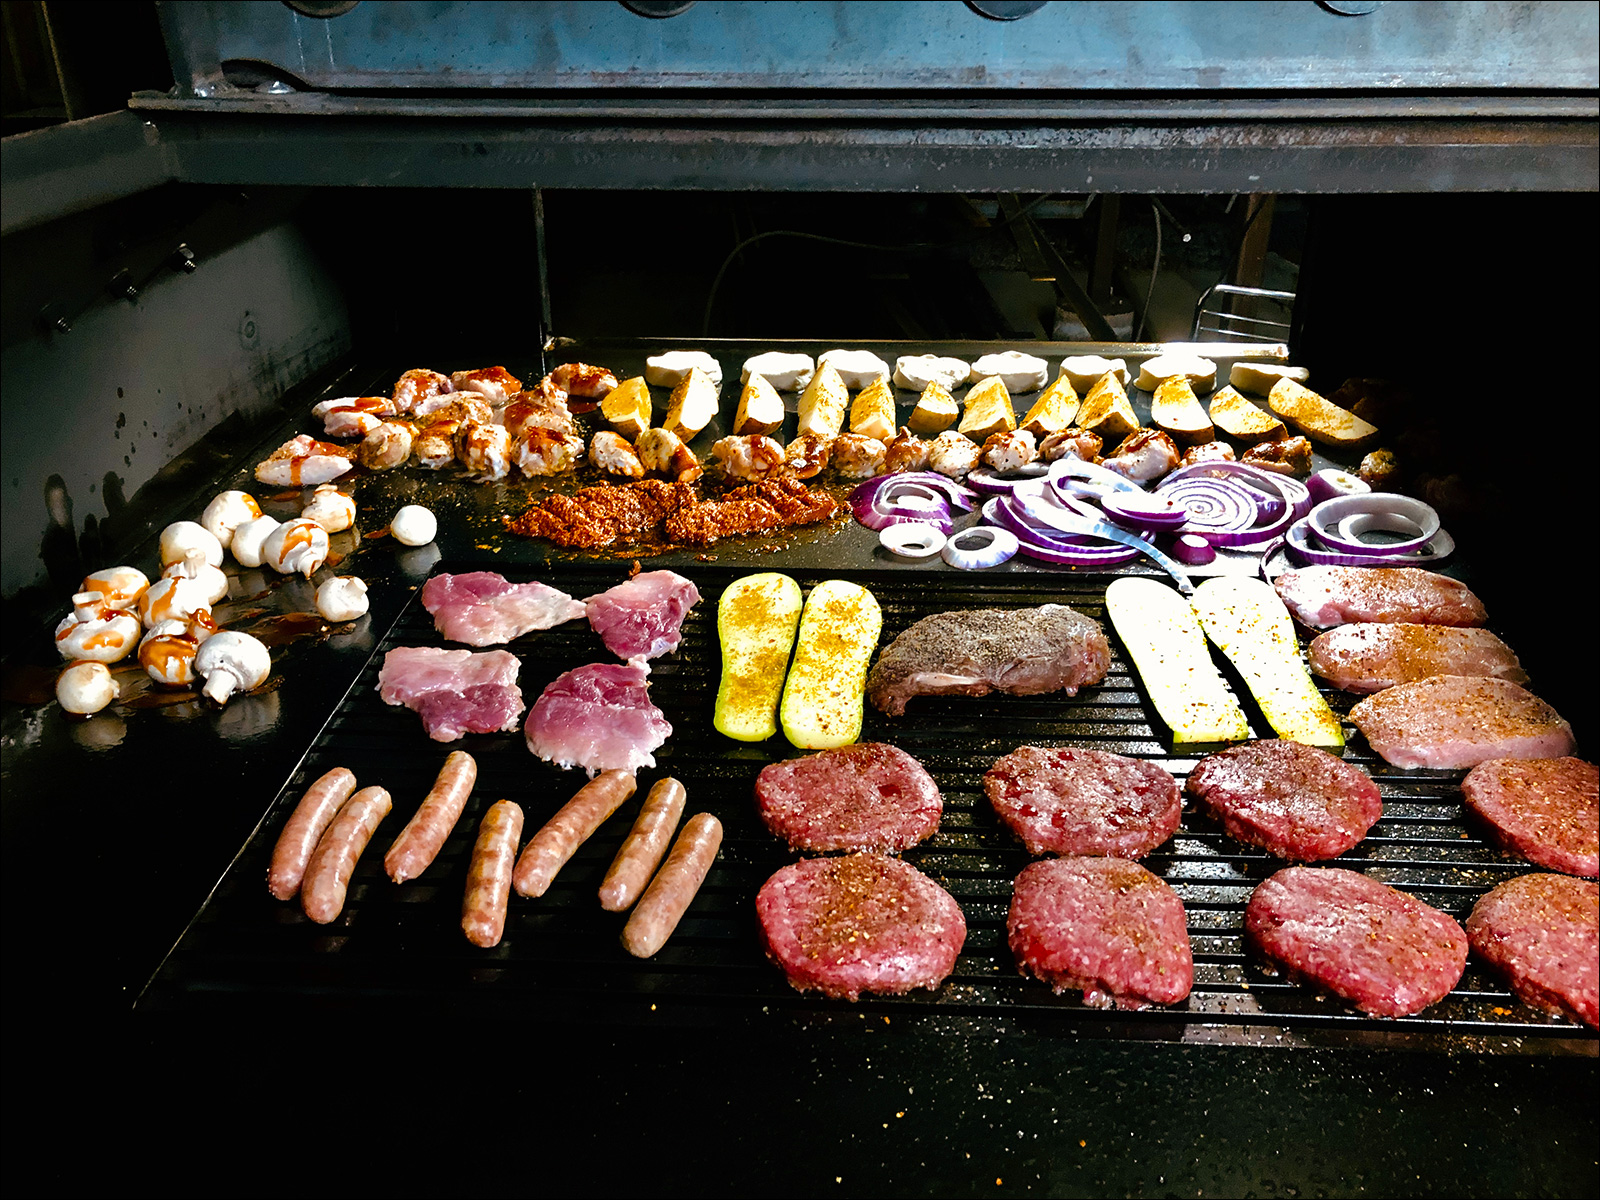 Variety Big Spread on a Peacemaker Grill Andrew Parent